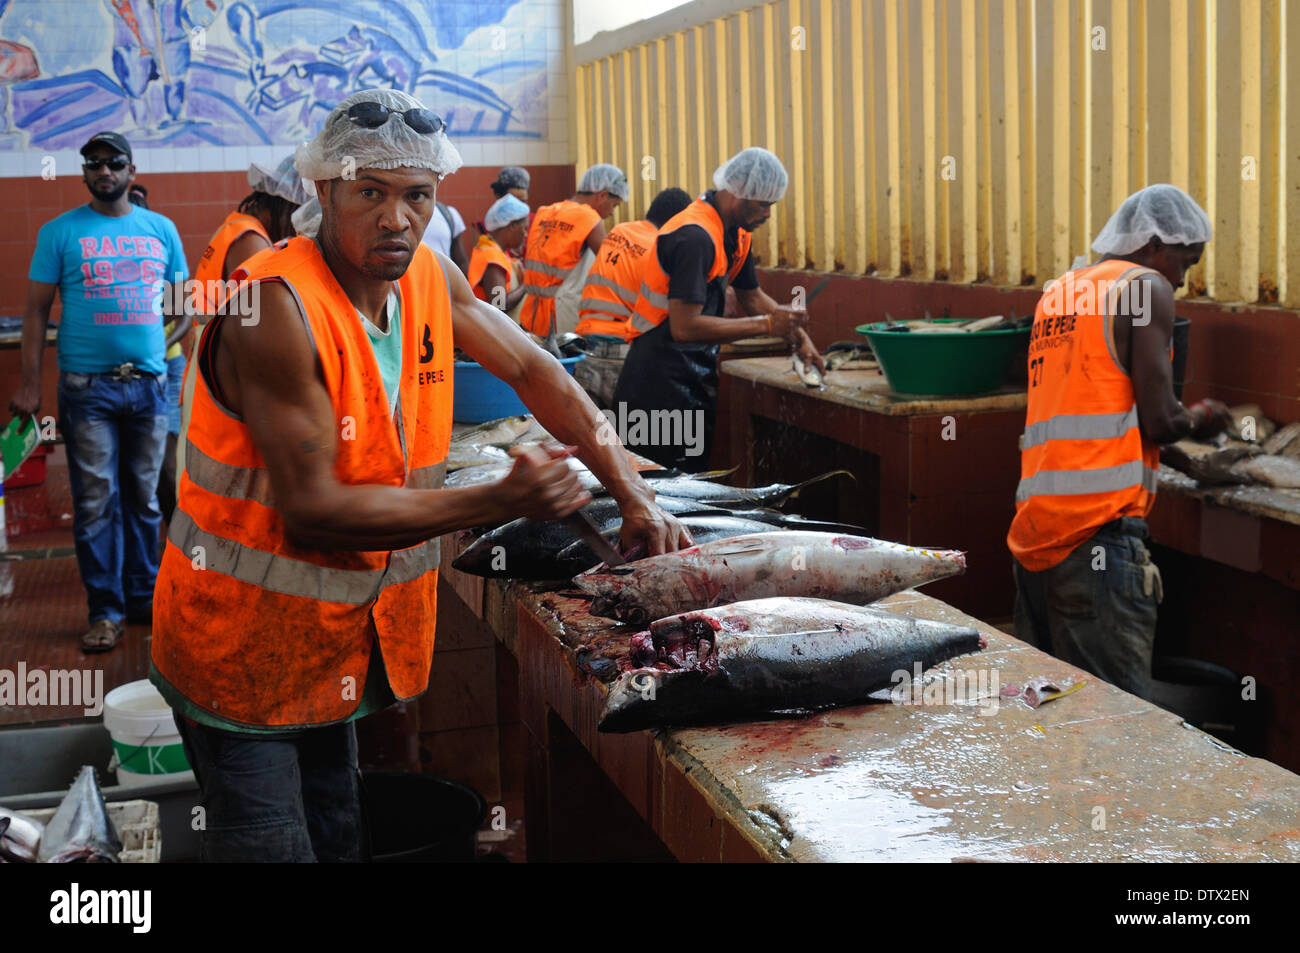 Fish being prepared for sale in the fish market, Mindelo, Cape Verde Islands Stock Photo